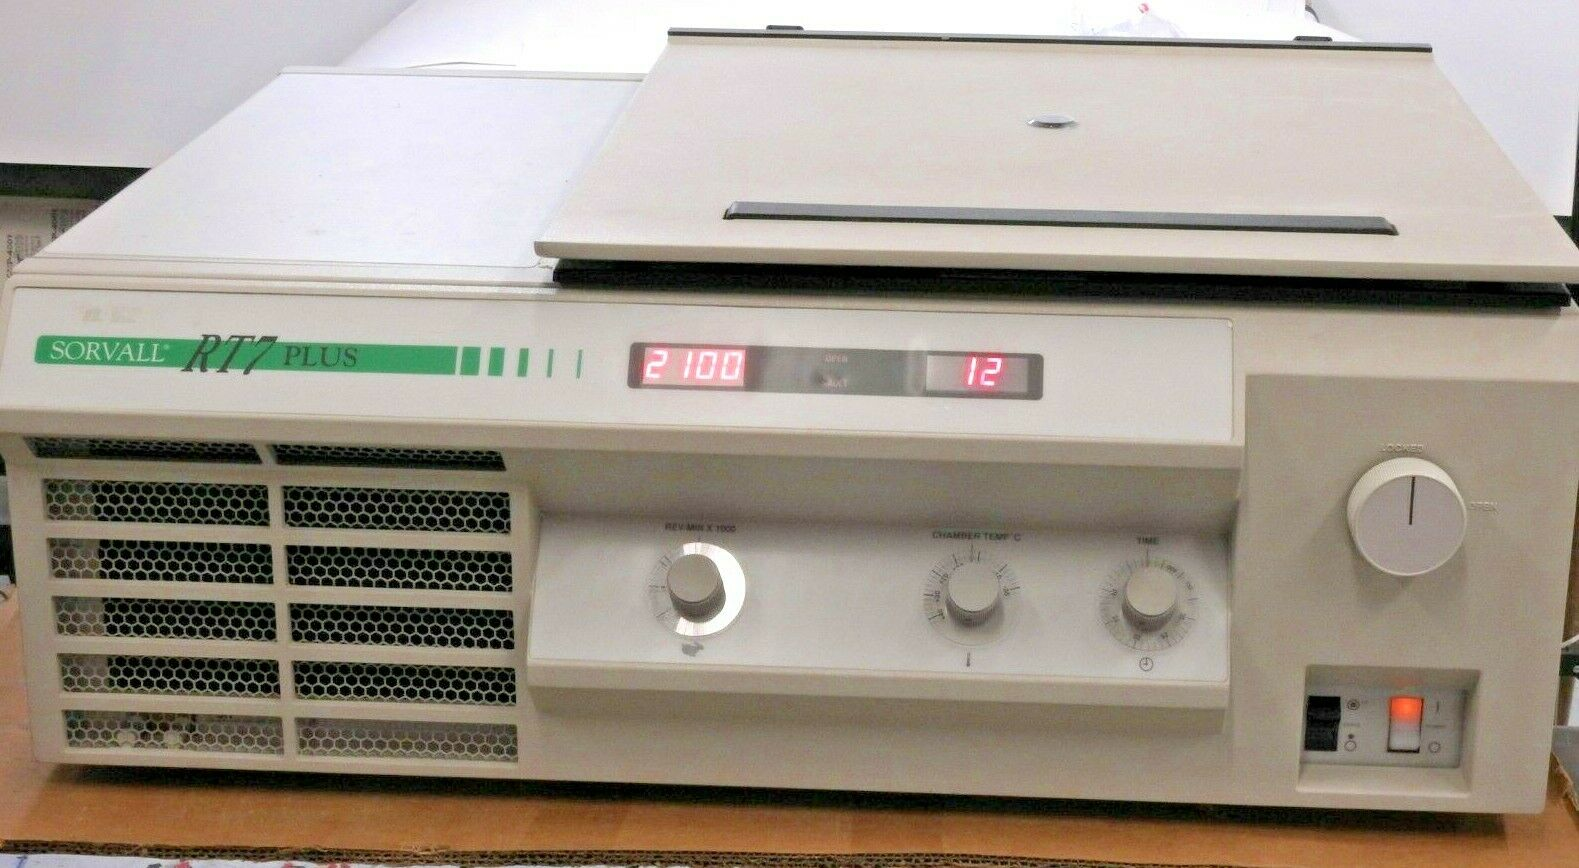 Sorvall RT7 Plus Centrifuge